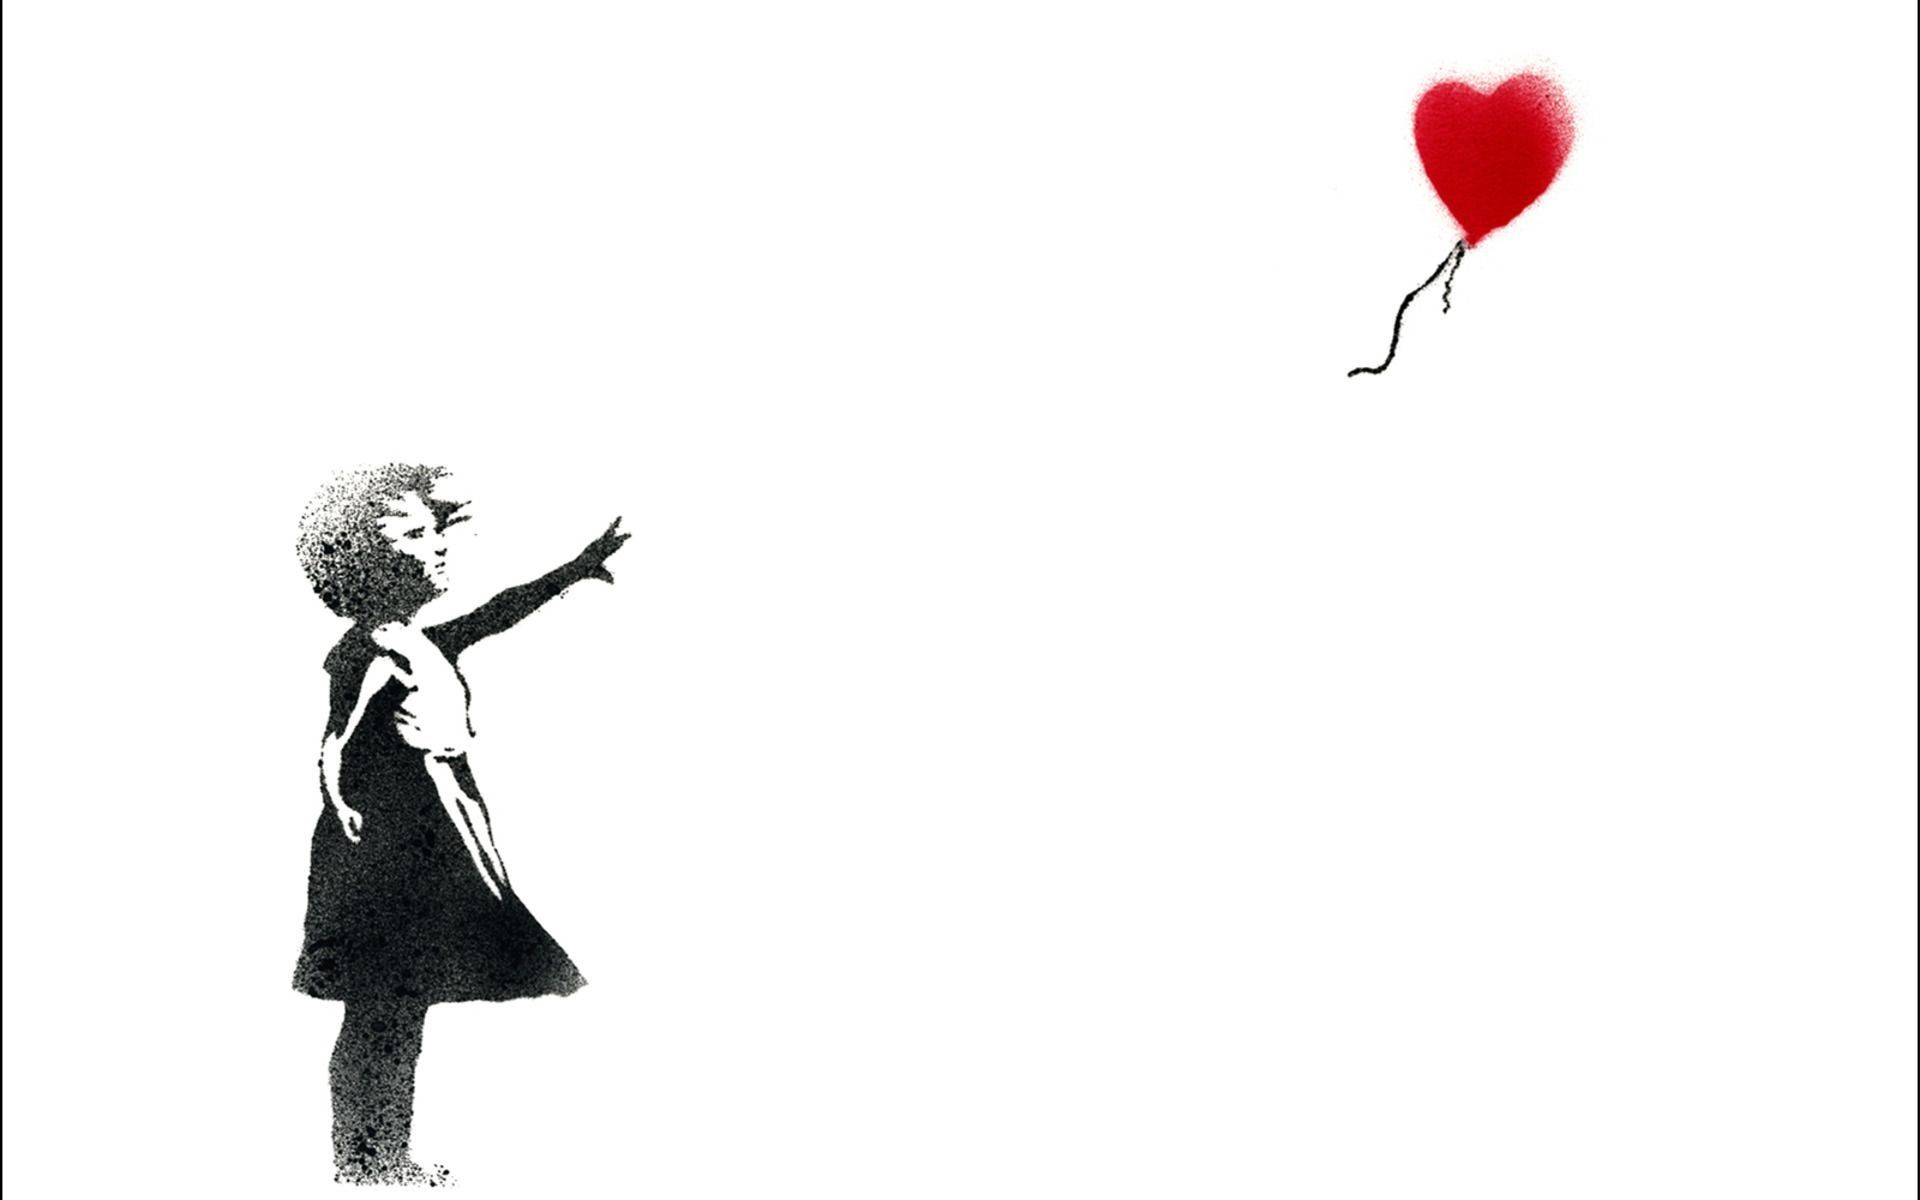 Banksy Art Wallpaper Widescreen.